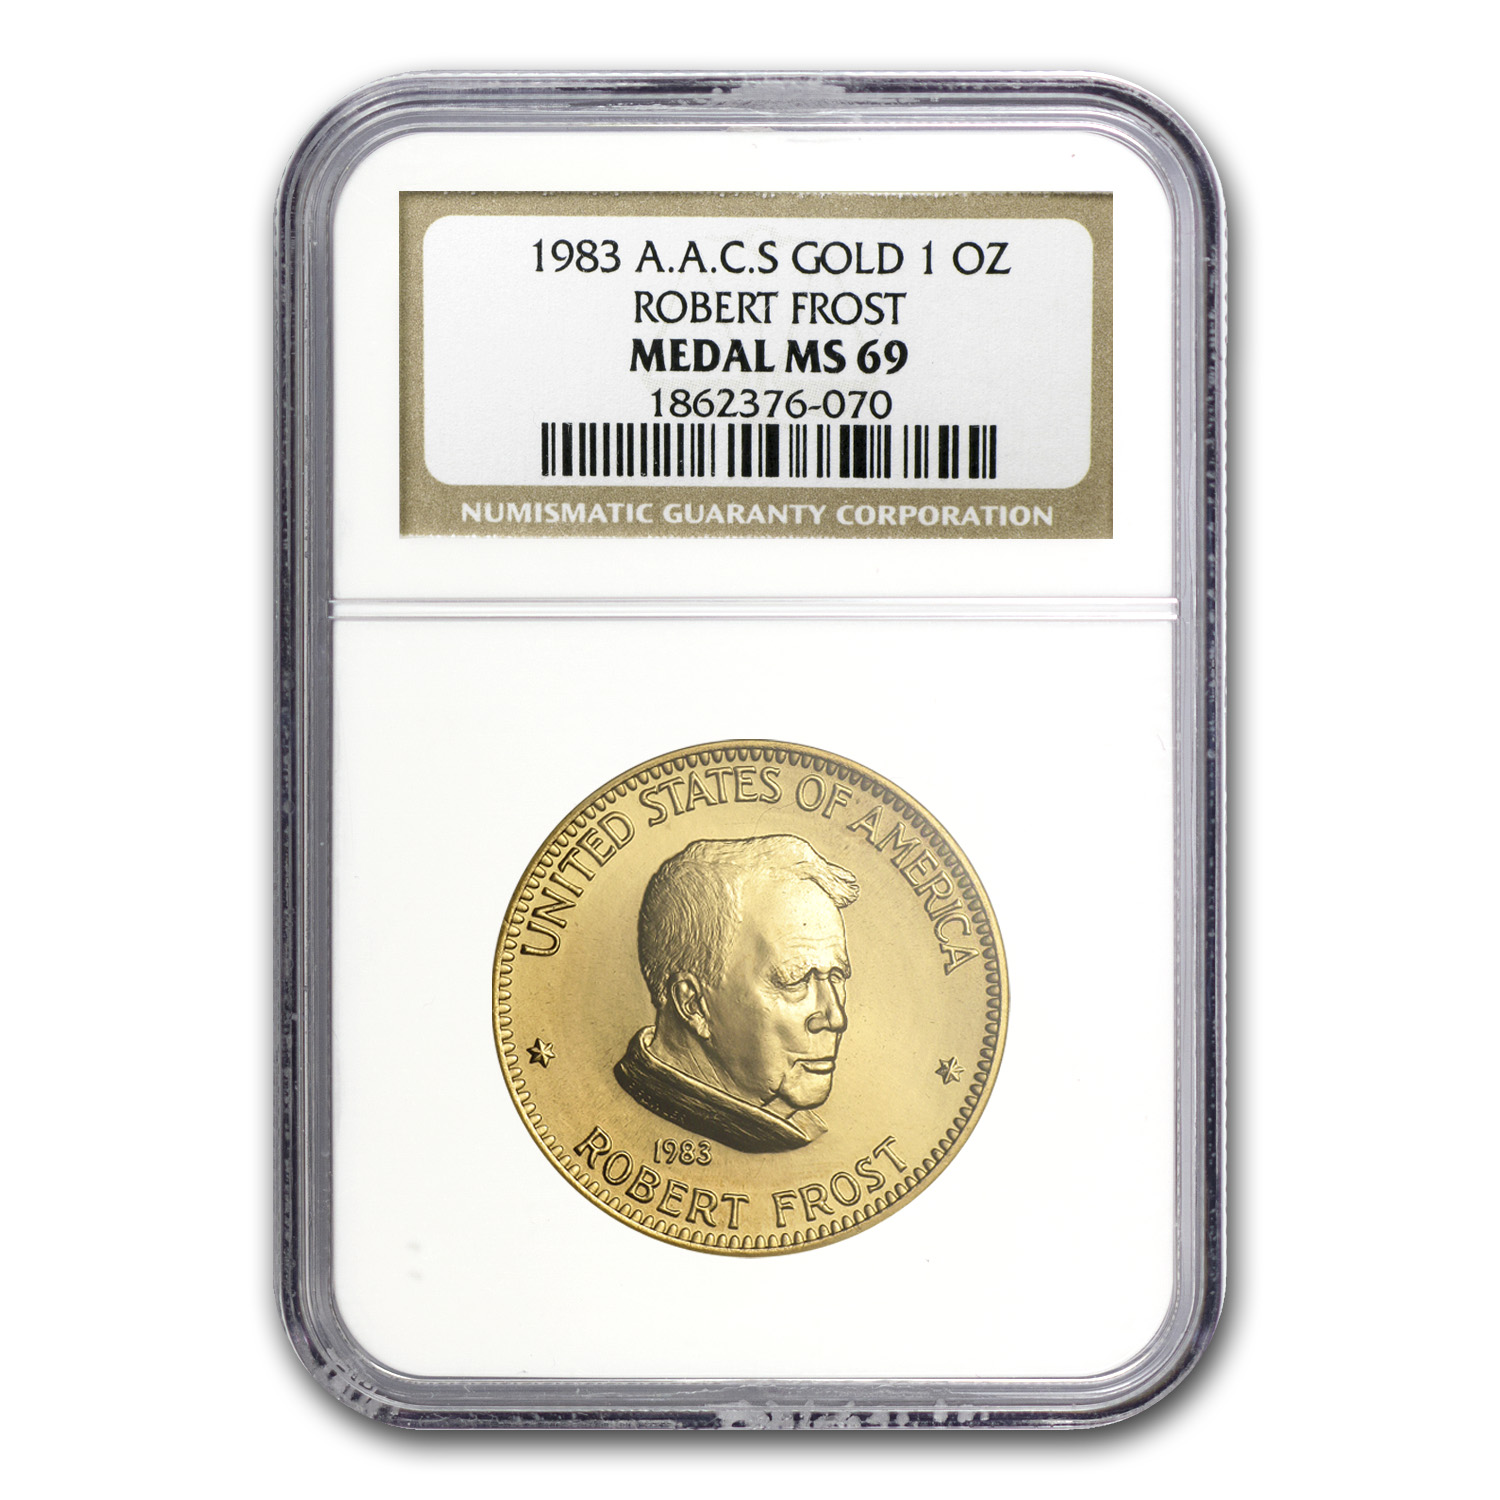 U.S. Mint Gold 1 oz Robert Frost MS-69 NGC